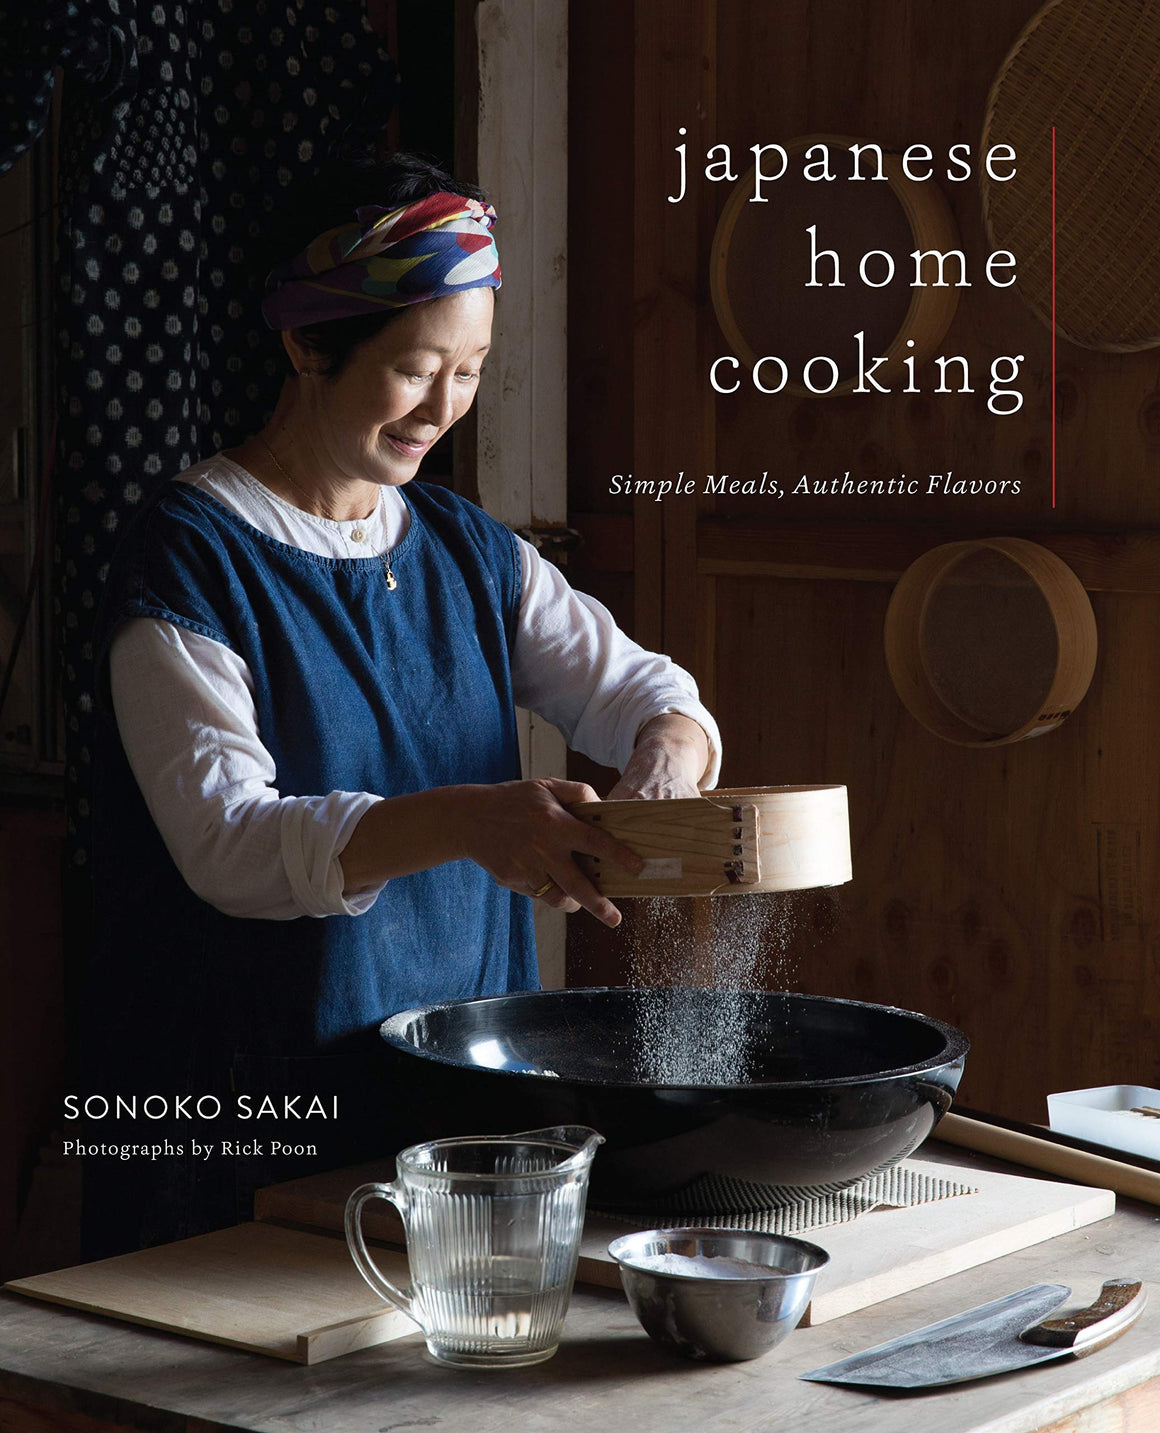 Sonoko Sakai. Japanese Home Cooking: Simple Meals, Authentic Flavors